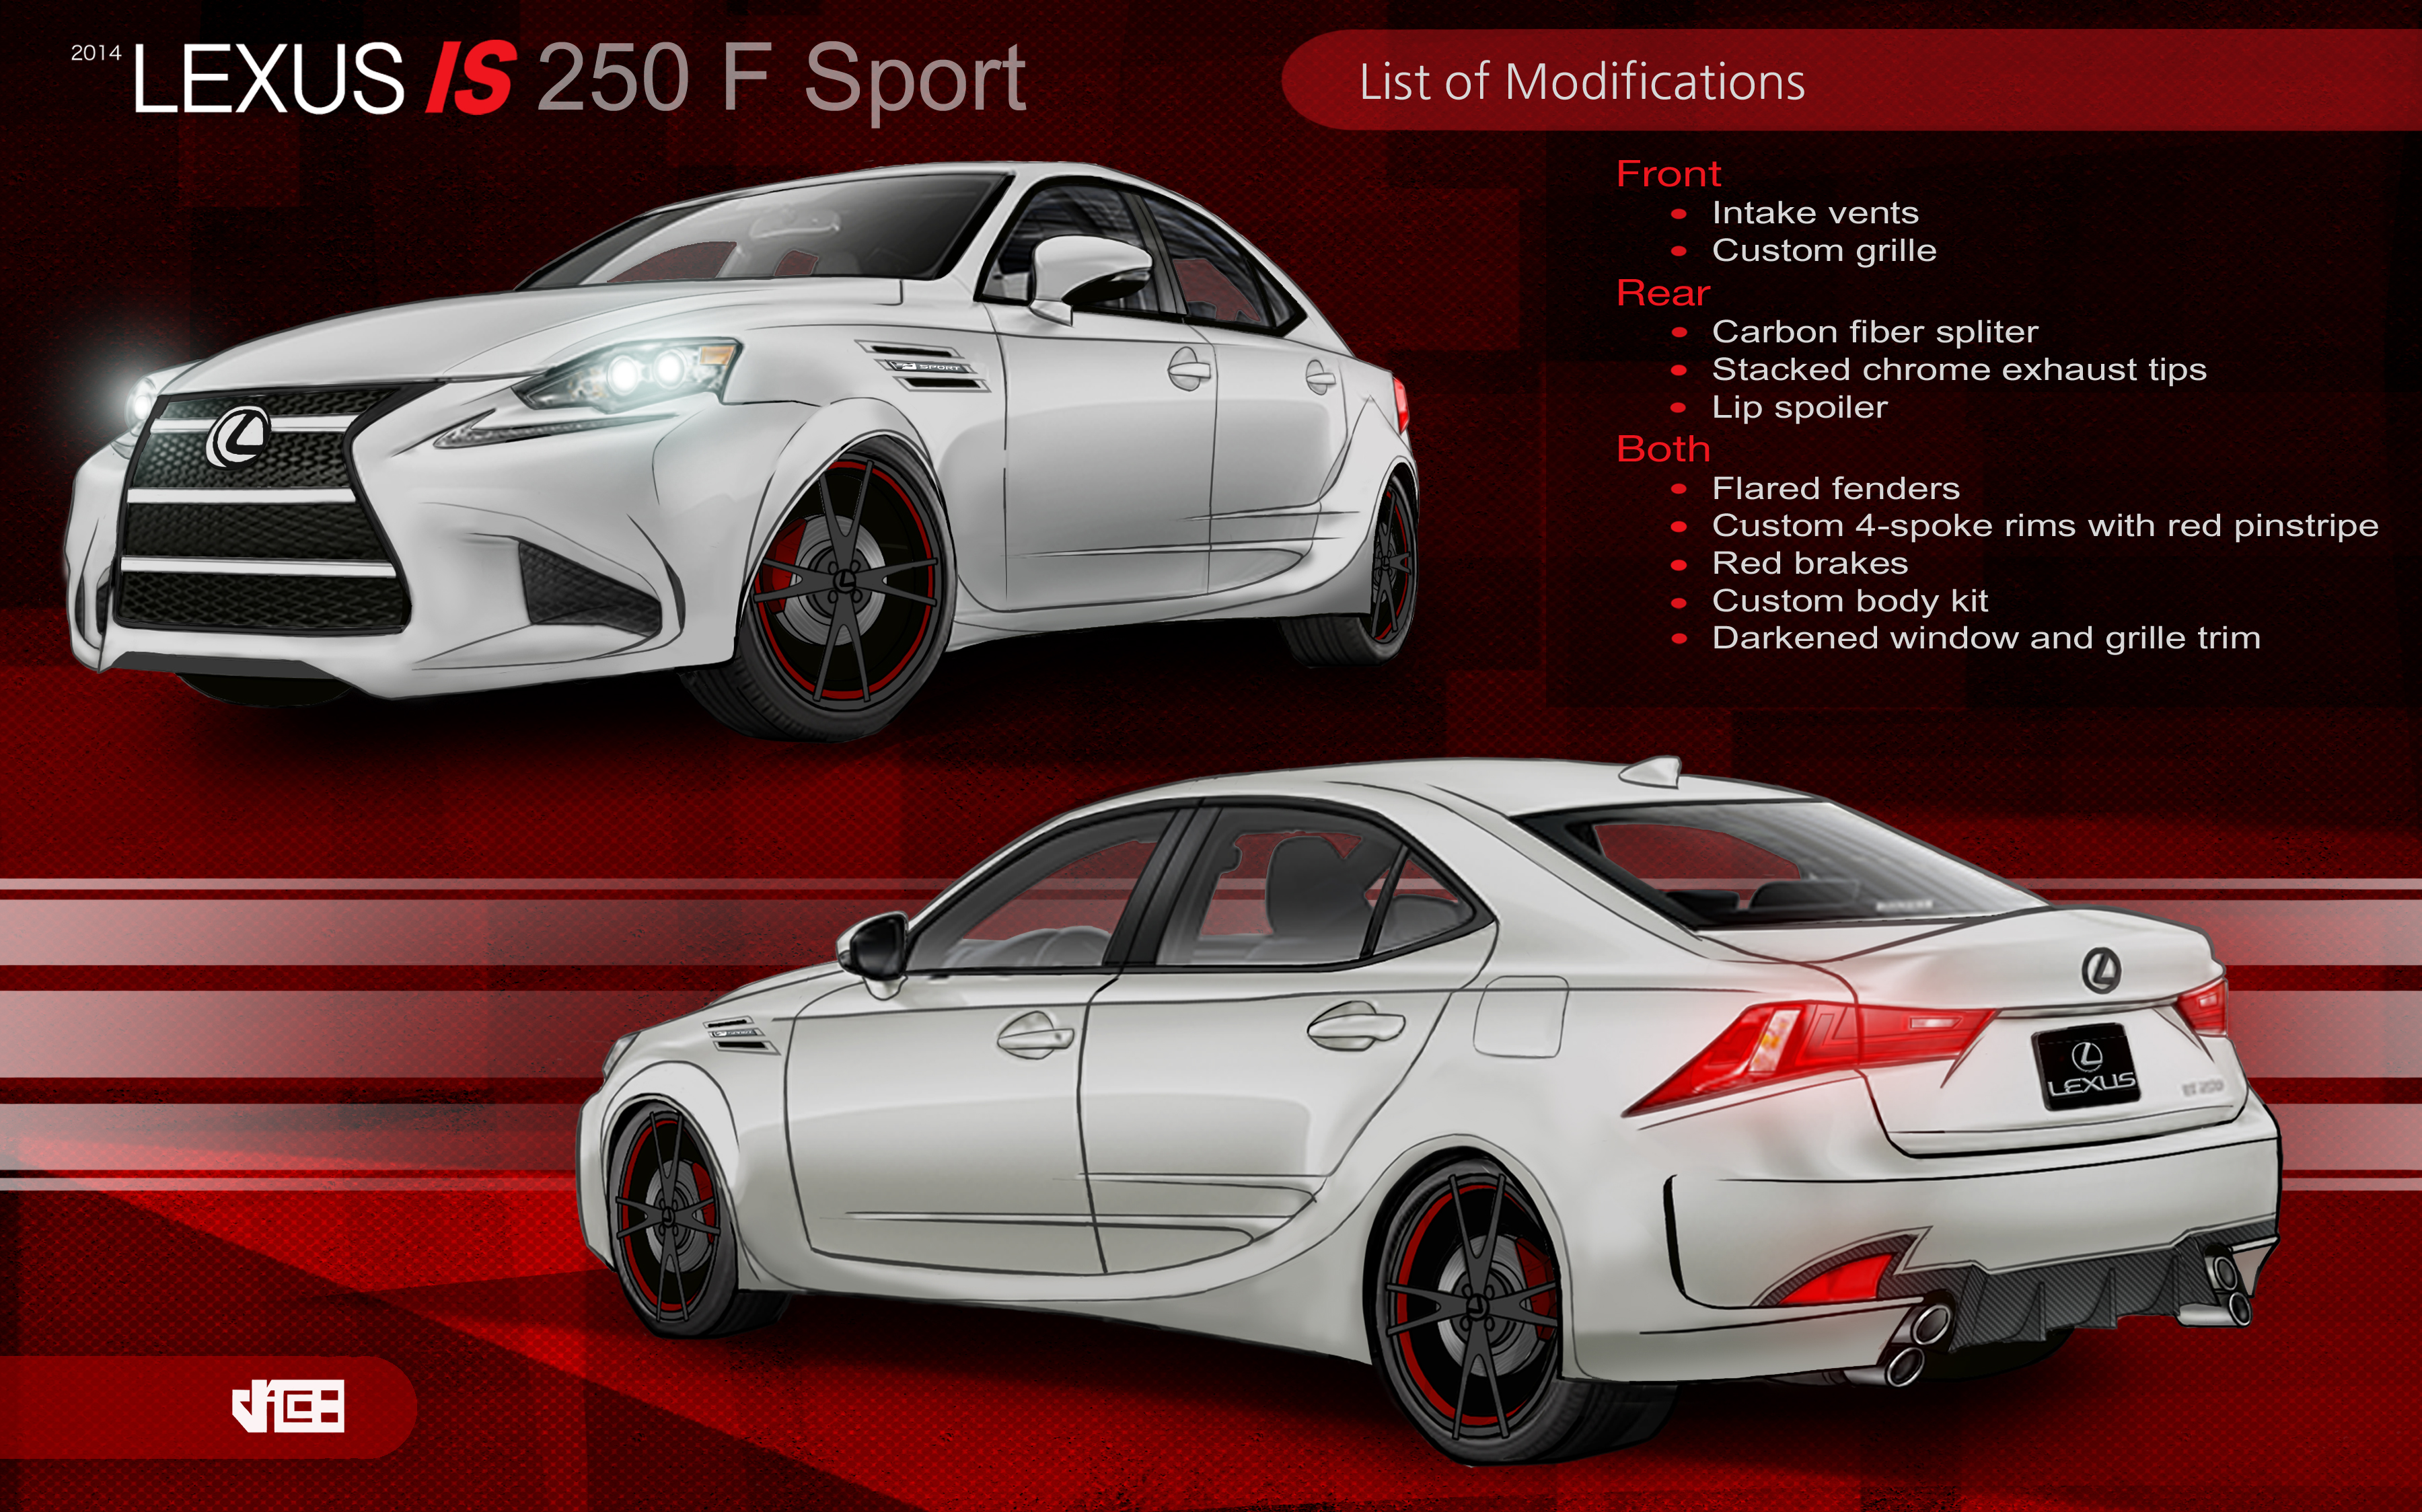 lexus is 250 f sport by jacoury on deviantart. Black Bedroom Furniture Sets. Home Design Ideas